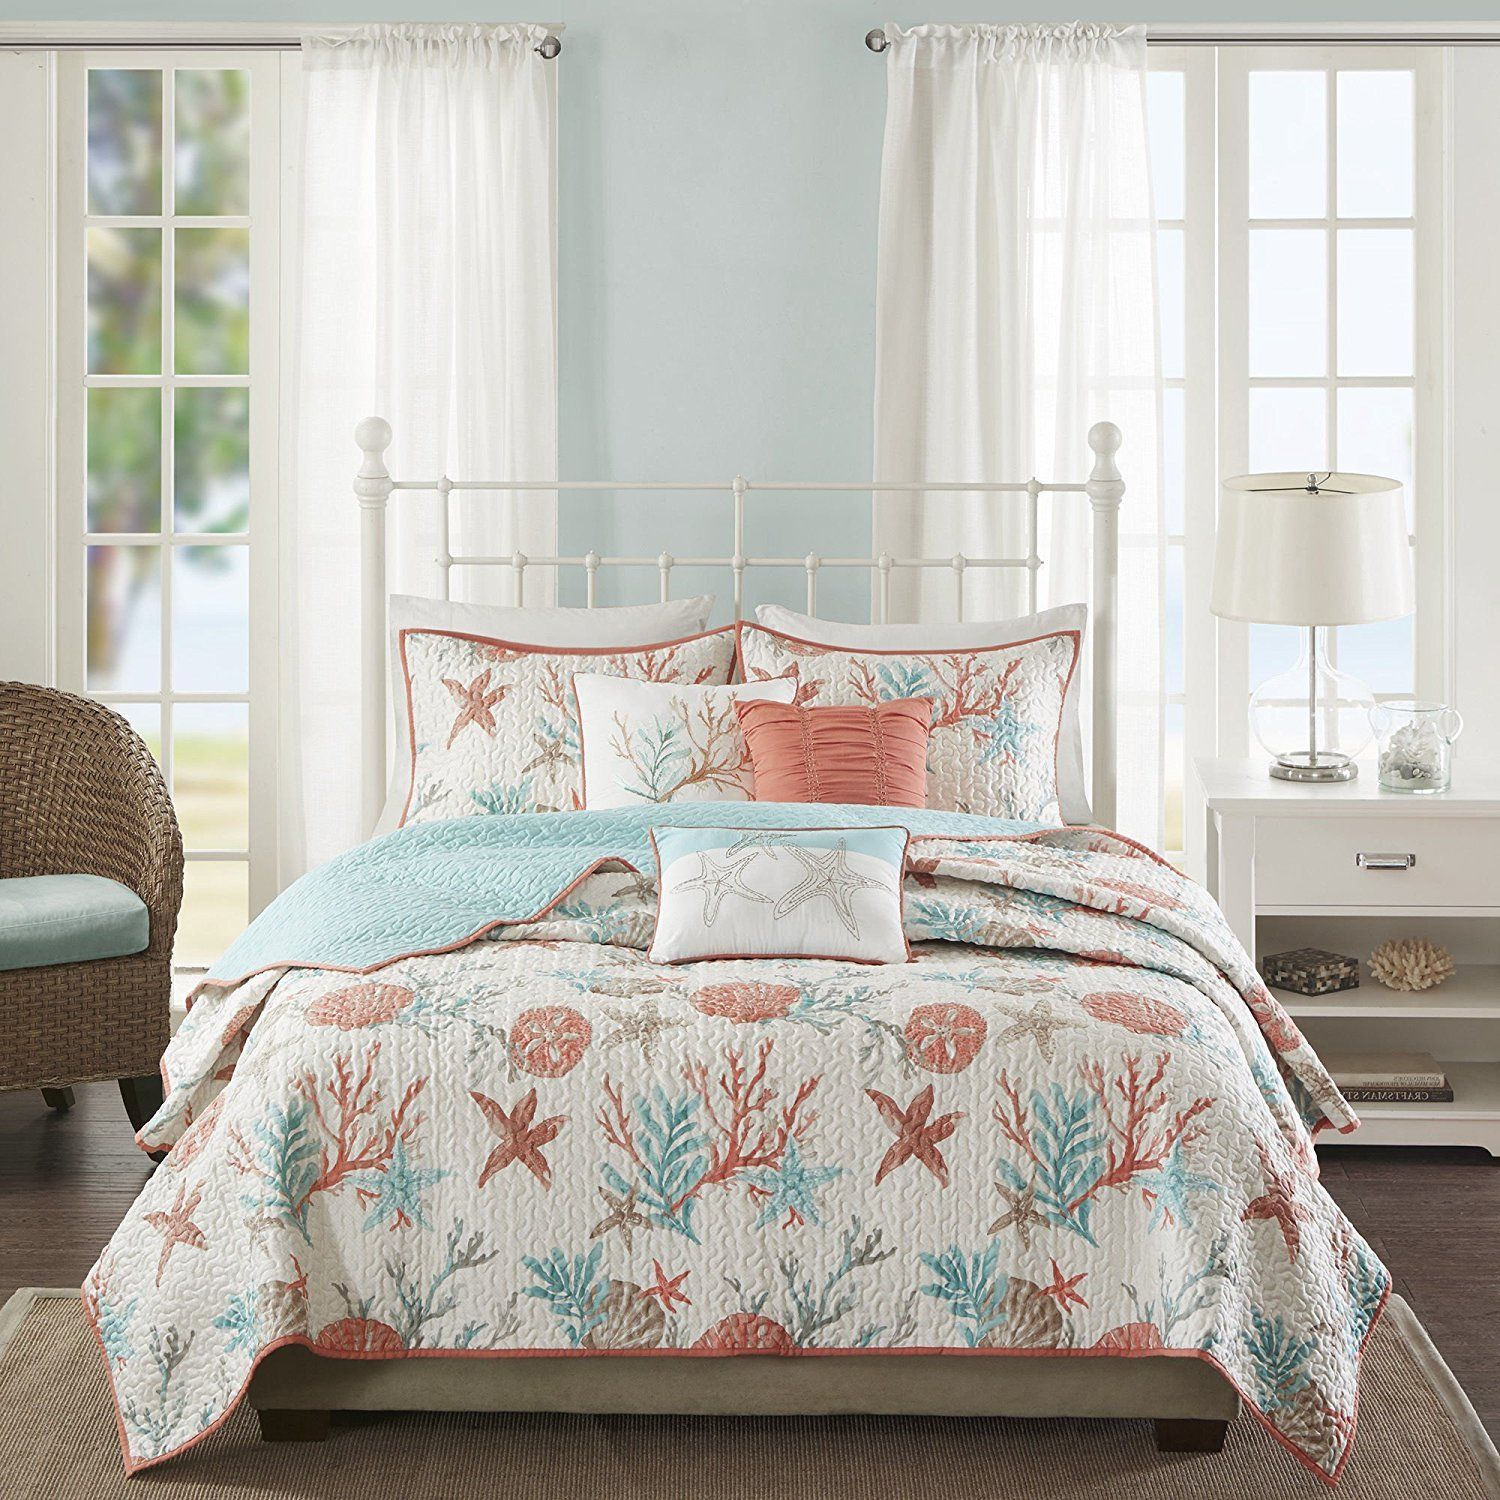 comforters set key blue themed siesta bedroom comforter beach pinterest in pin